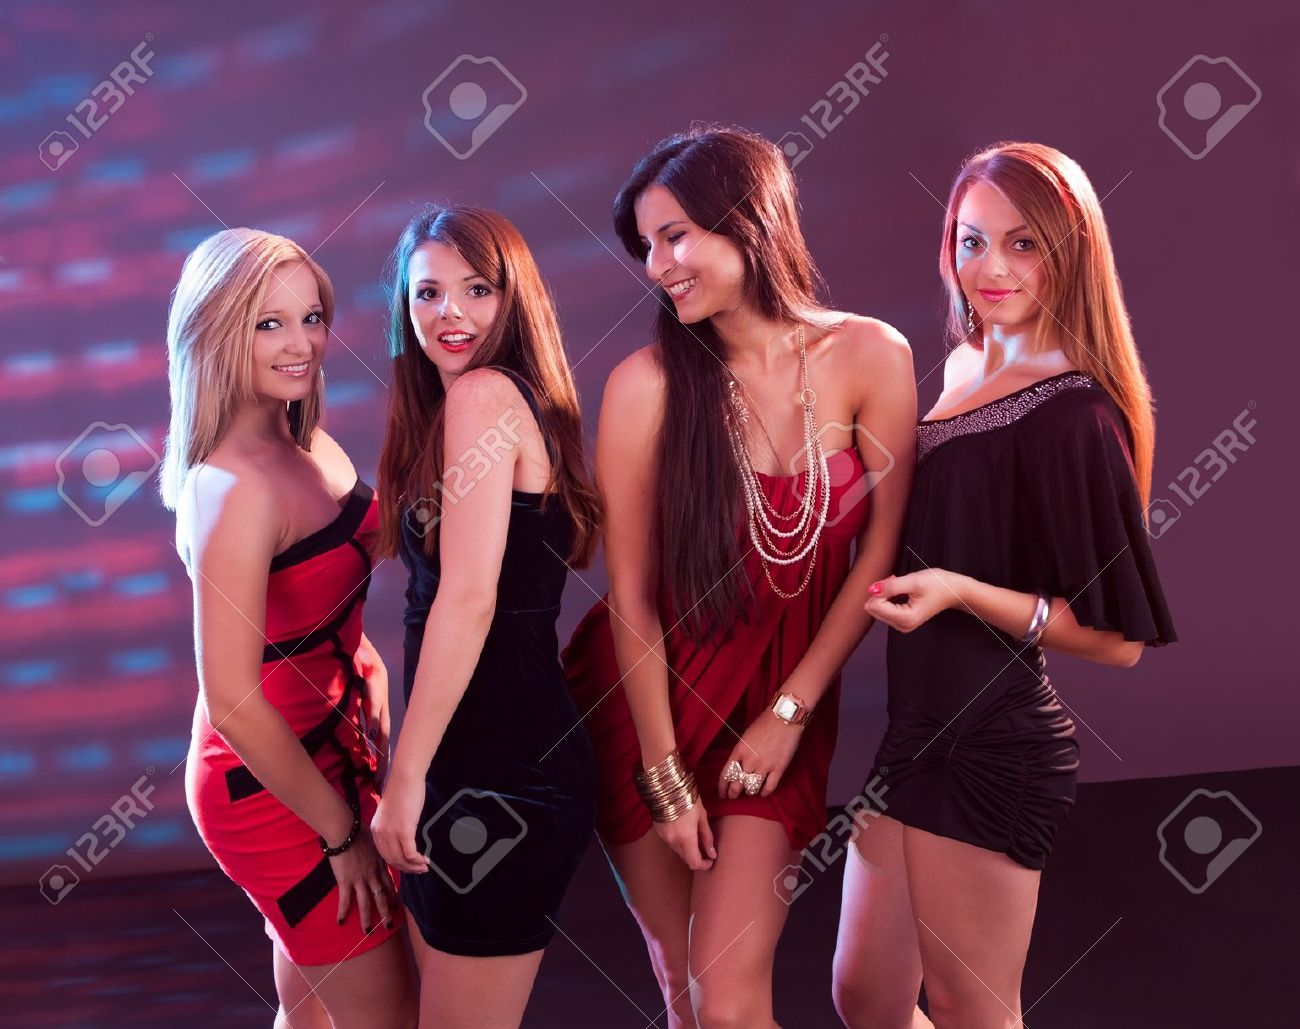 be883d1a8 Group of glamorous young women in evening attire dancing together at a  nightclub or disco Stock